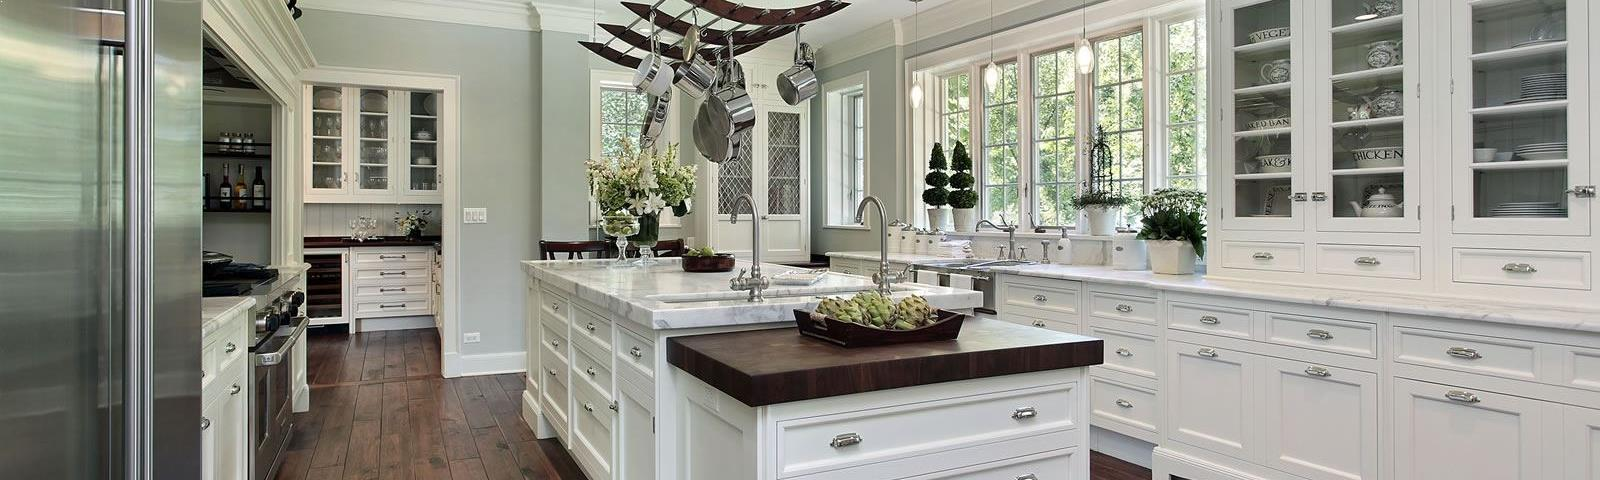 Go Pro Construction Home Remodeling In Gaithersburg MD